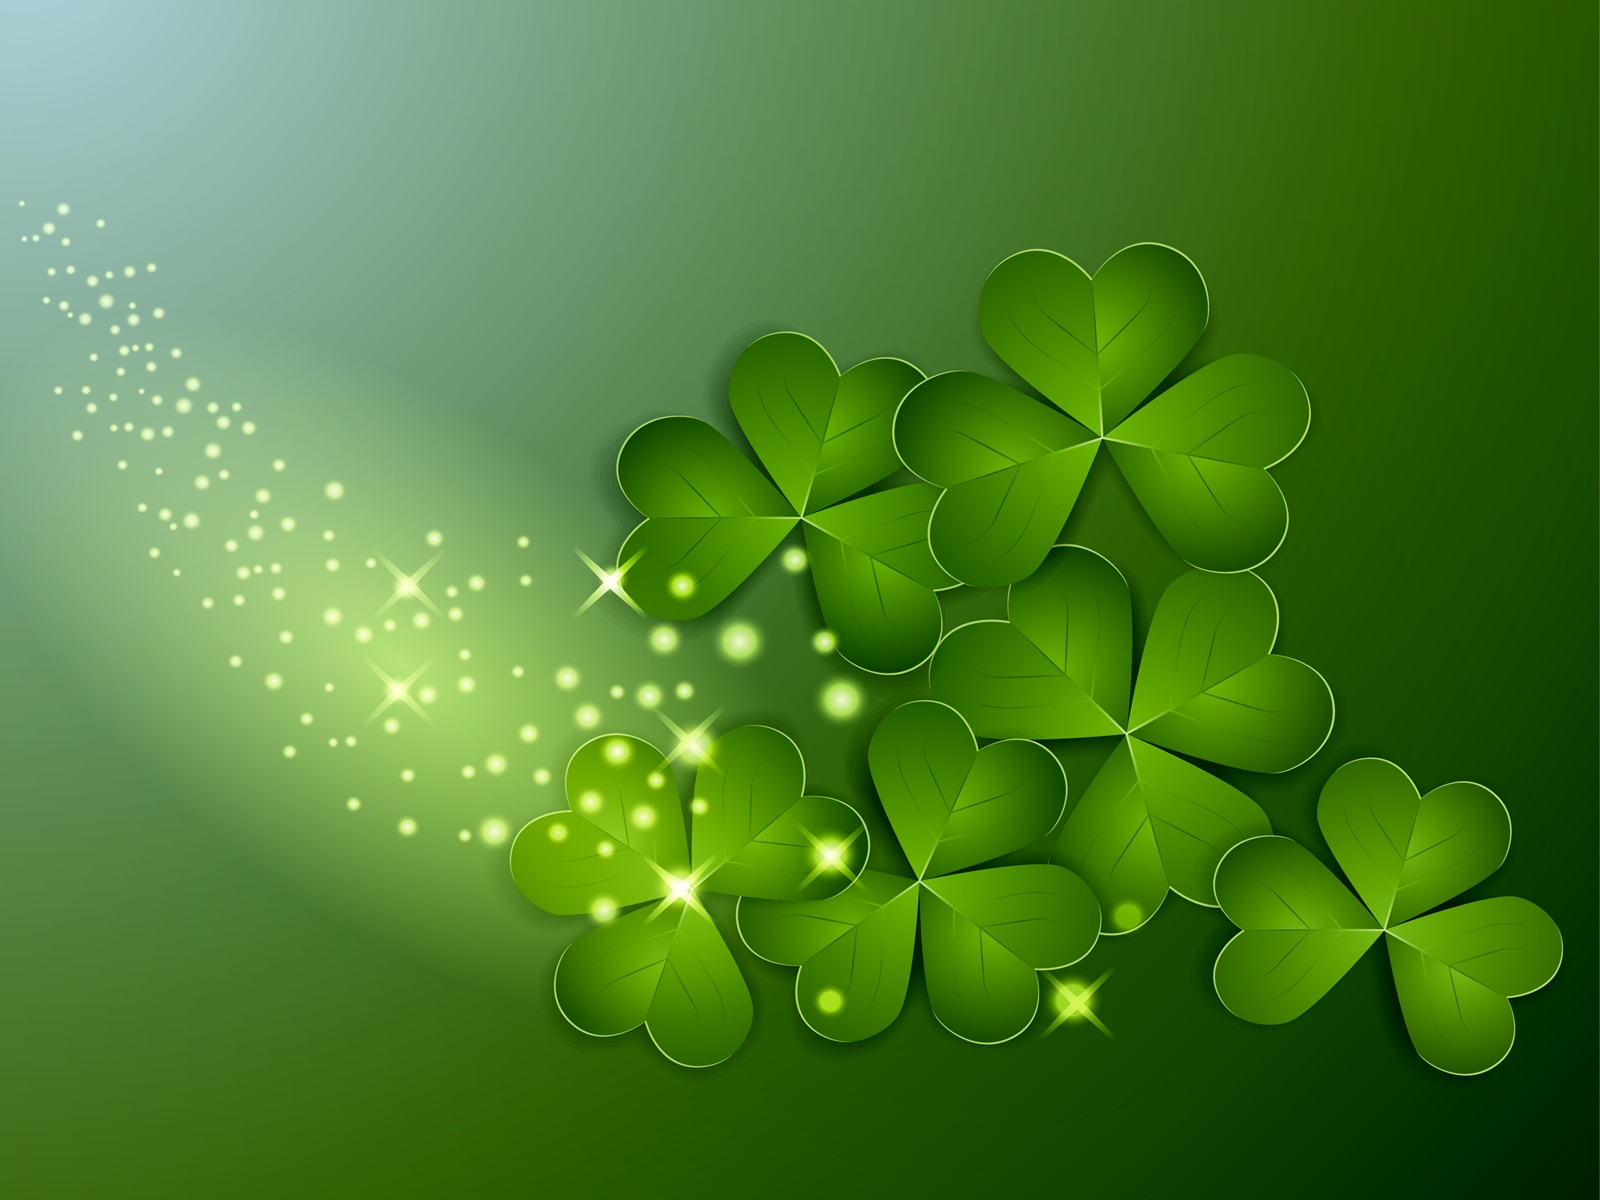 49] St Patricks Day Wallpaper Backgrounds on WallpaperSafari 1600x1200